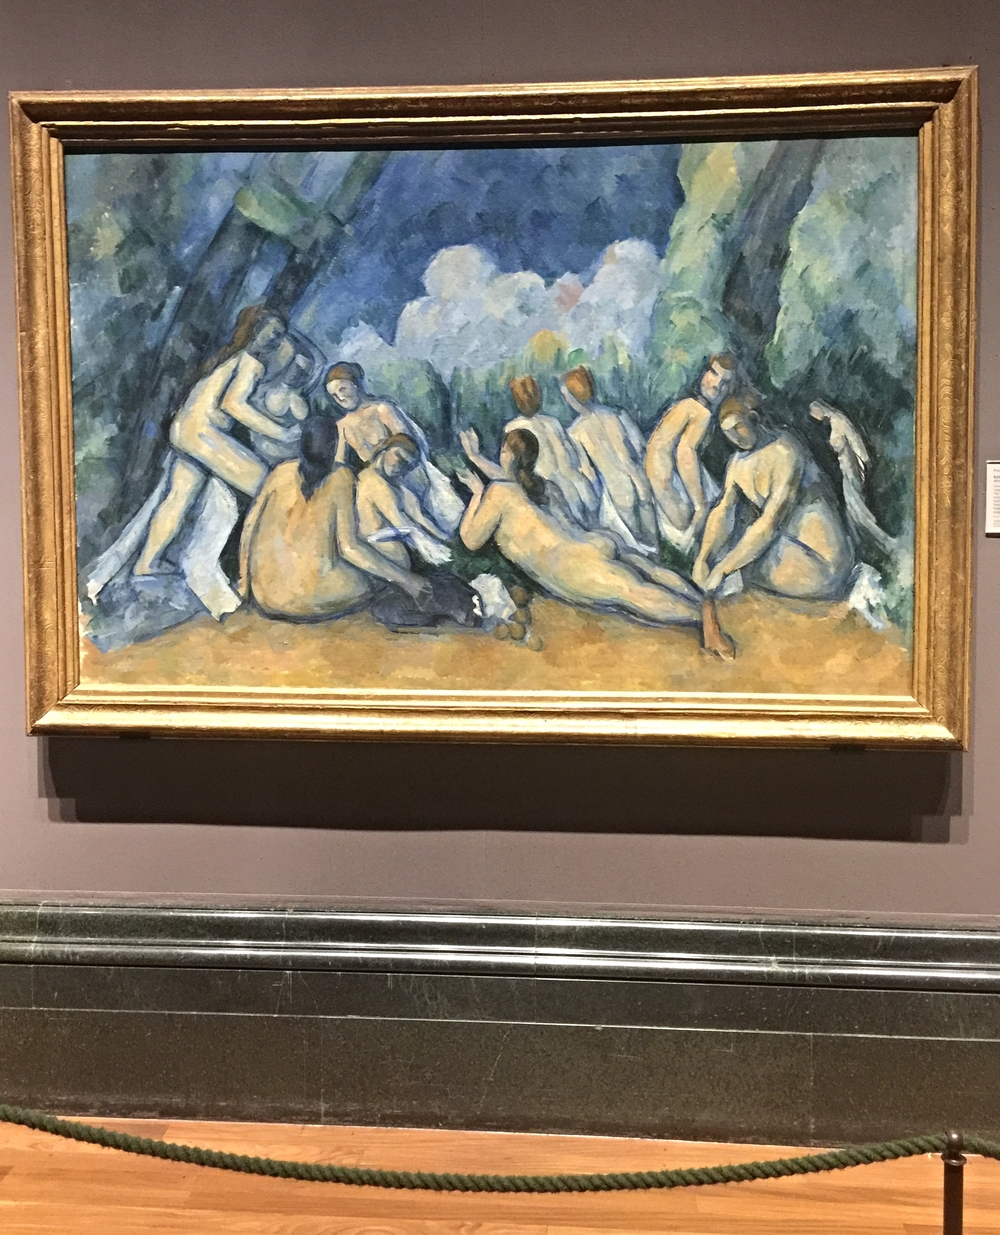 Paul Cezanne,  Bathers  (1884-1905). Stunning! Matisse carried a postcard picture of this painting as a young artist.